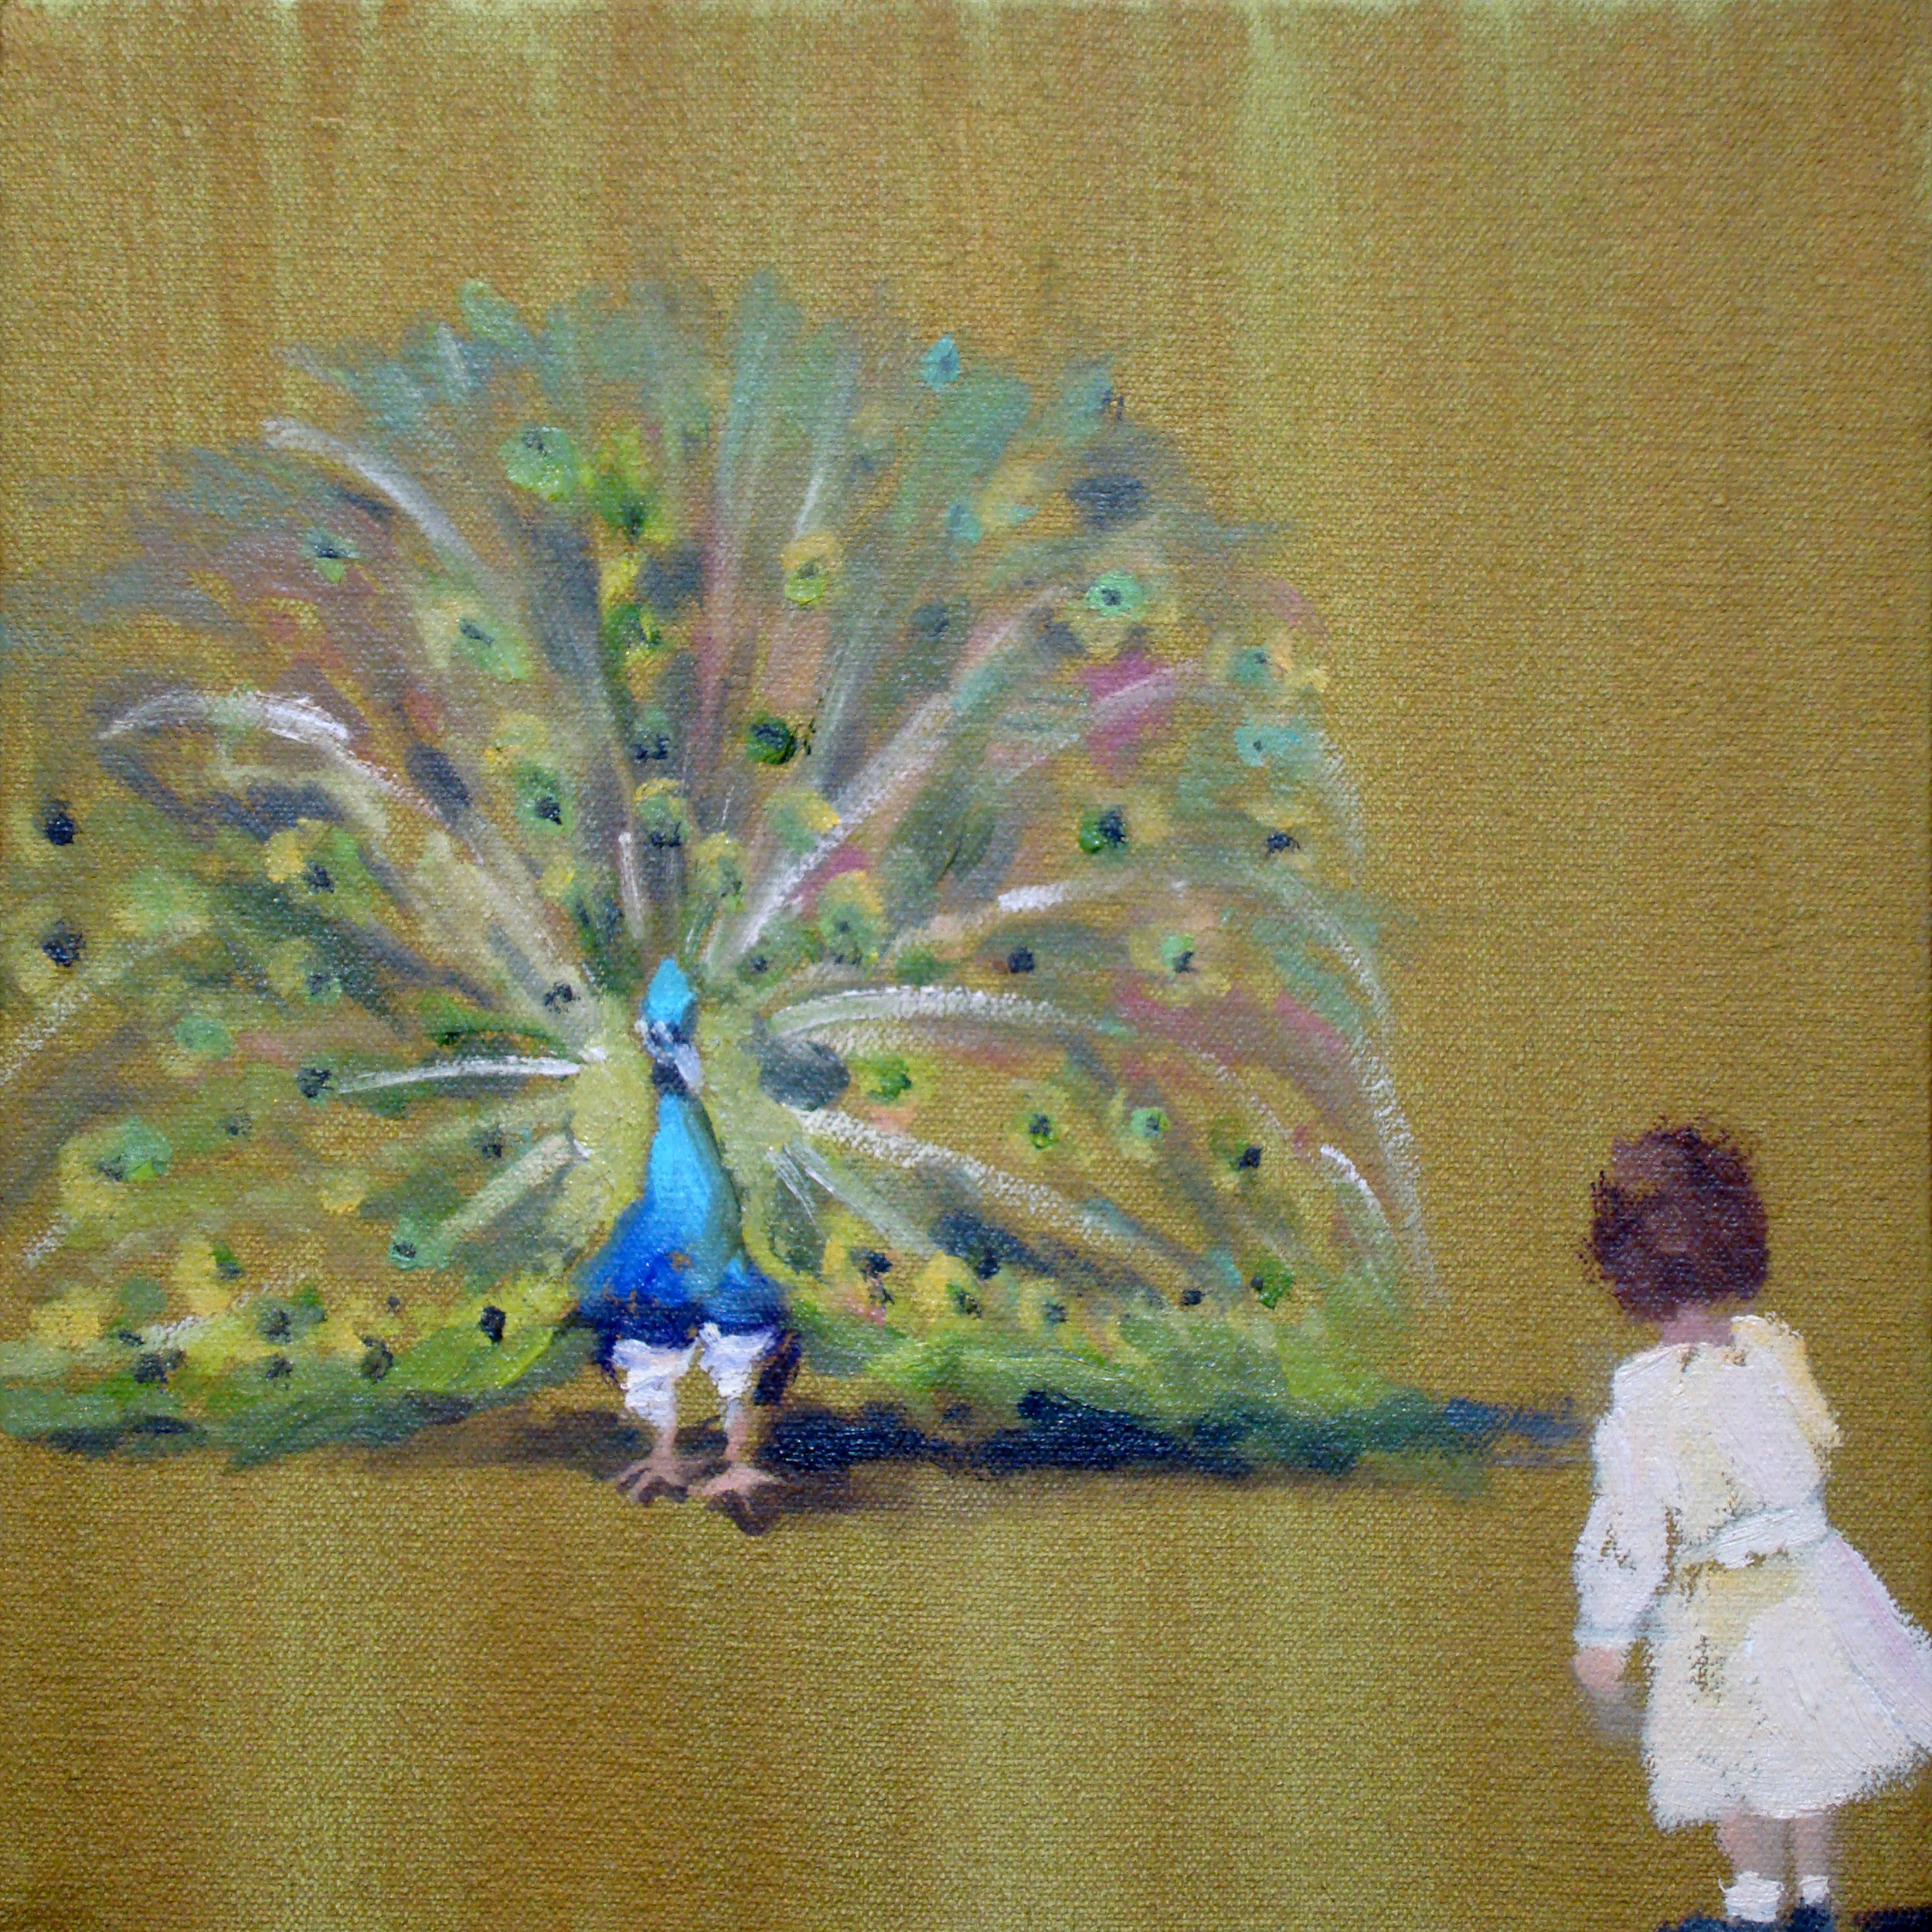 Vintage Suite (peacock) 8 x 8 in. oil on canvas  2011